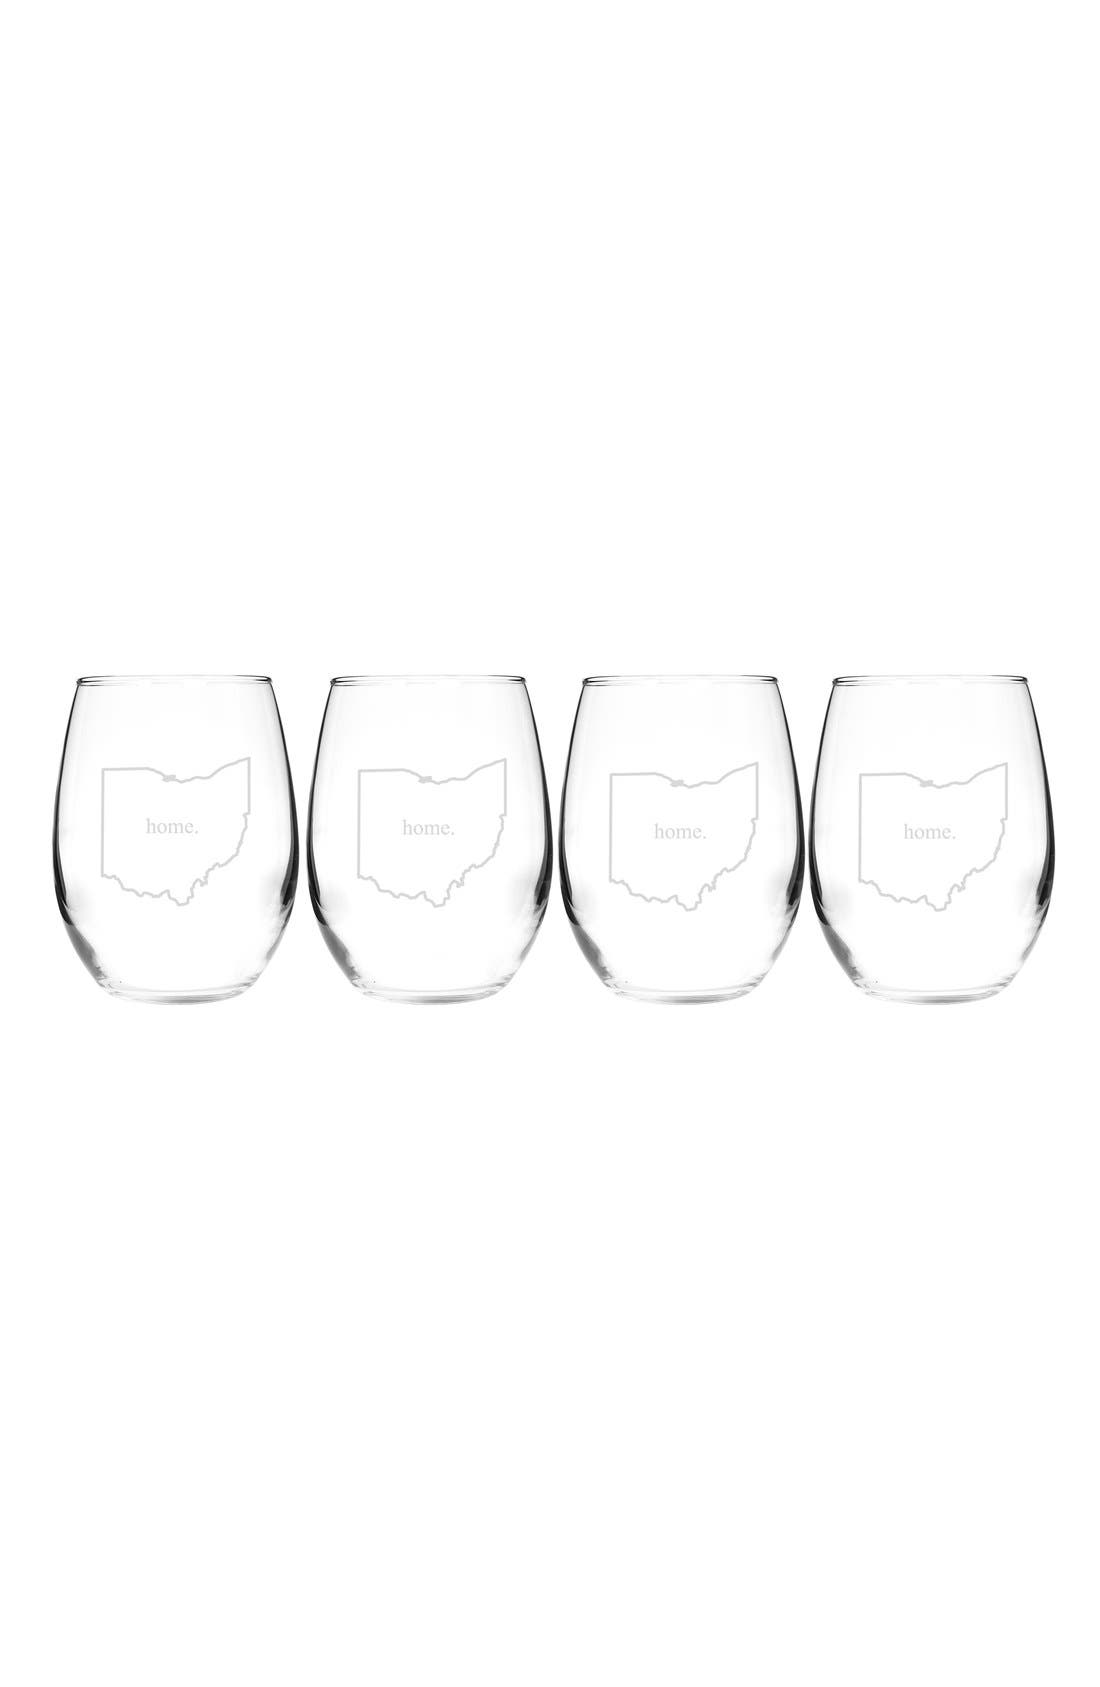 Home State Set of 4 Stemless Wine Glasses,                             Main thumbnail 36, color,